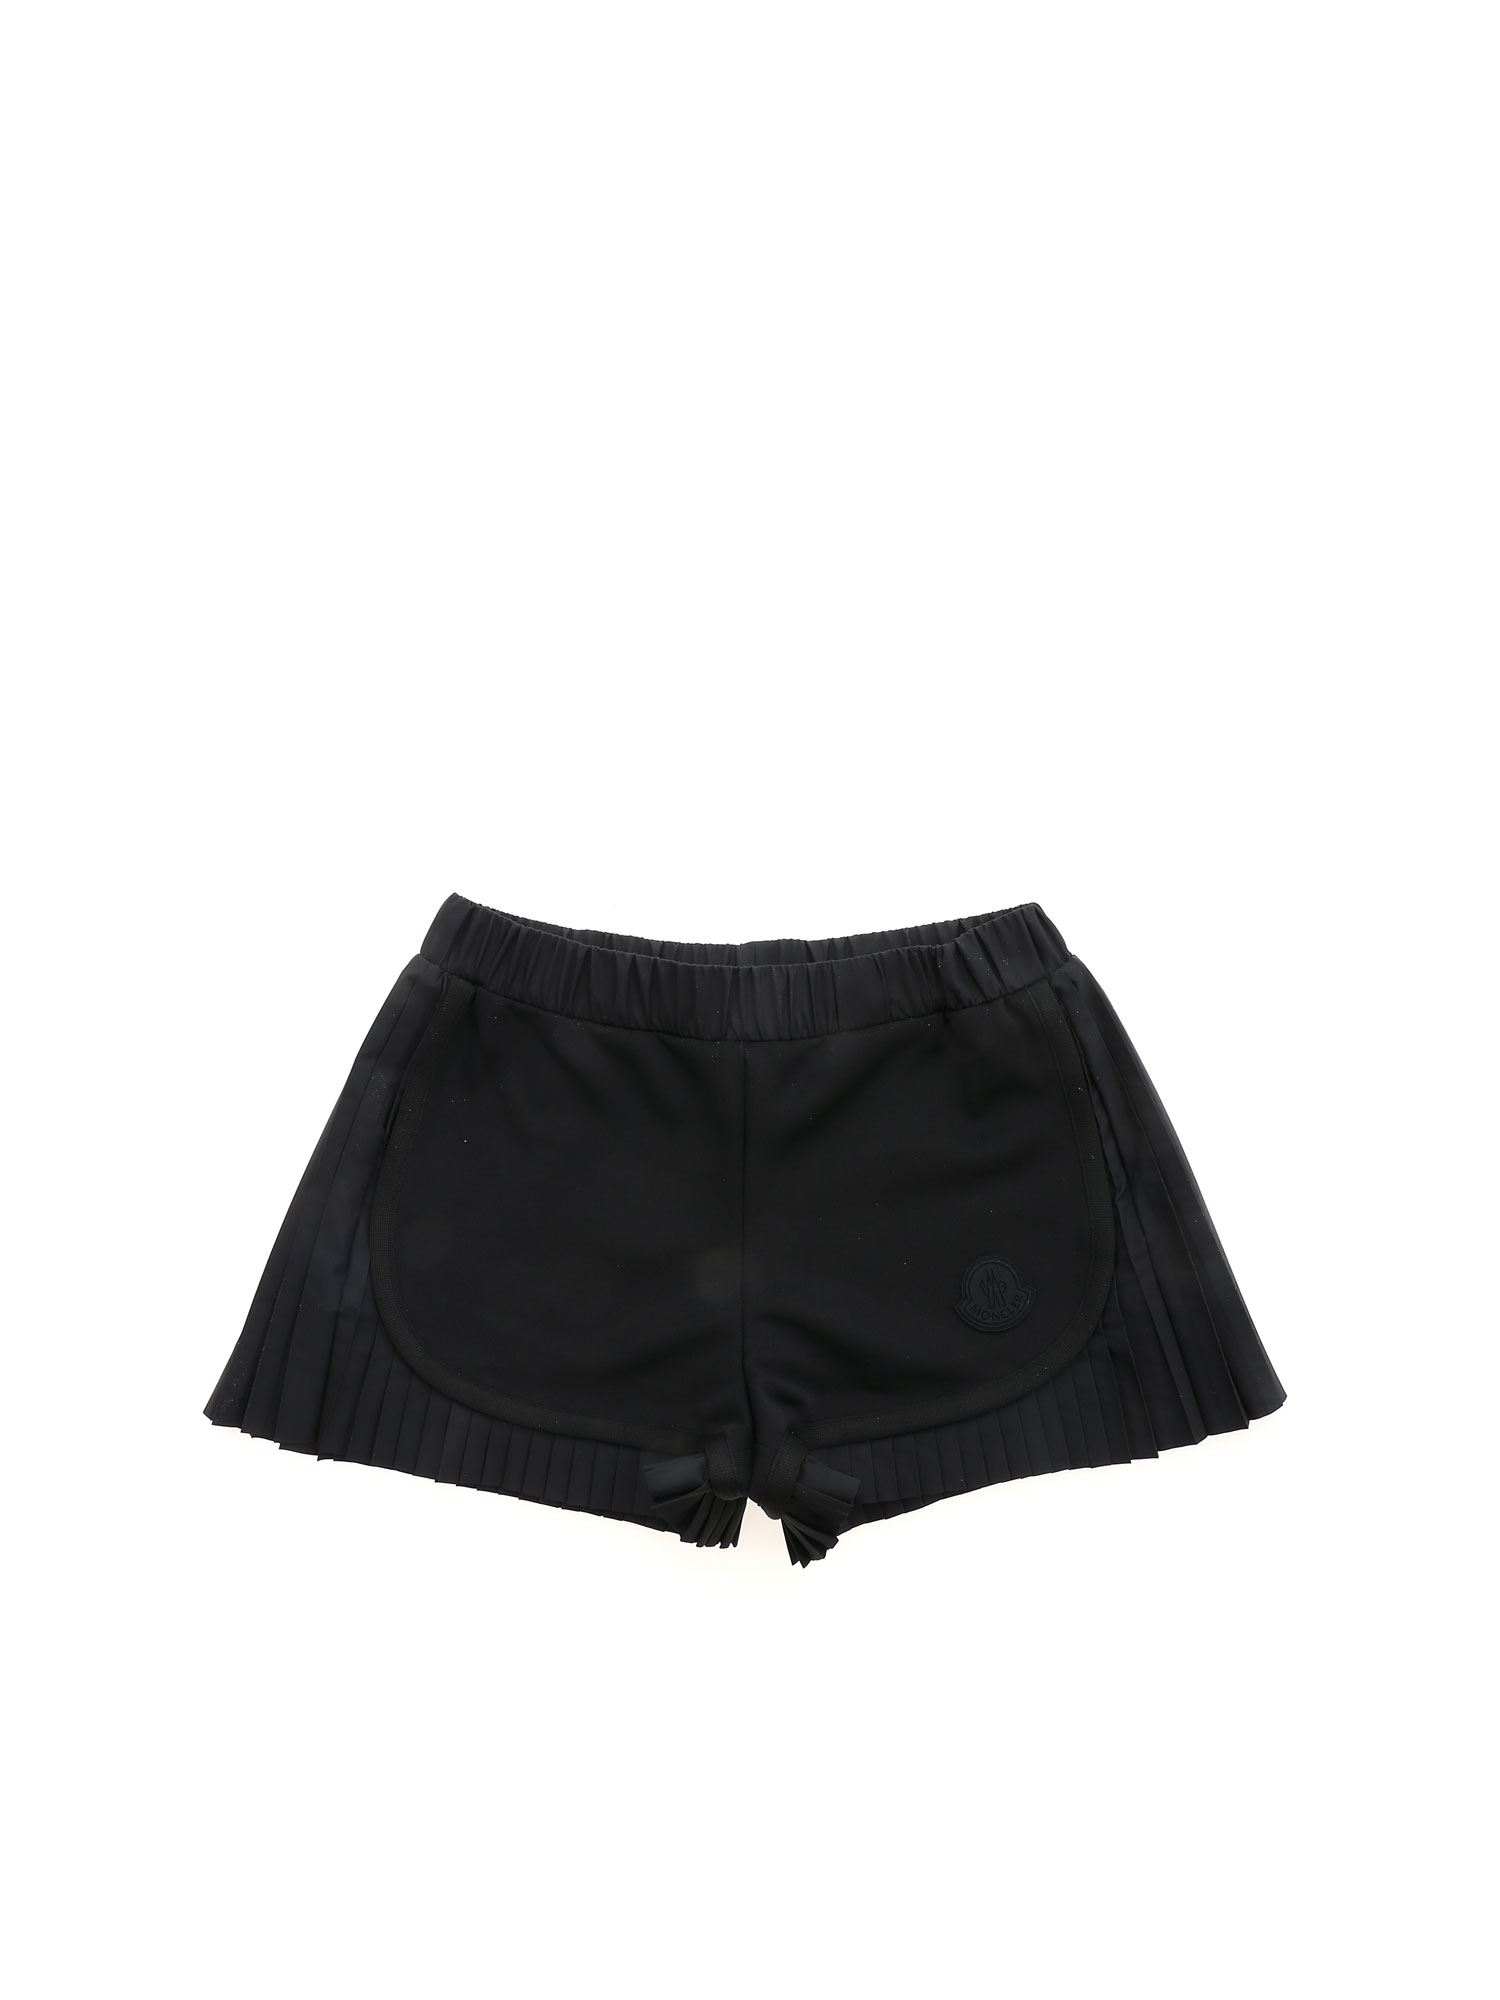 Moncler Jr PLEATED DETAILS SHORTS IN BLACK